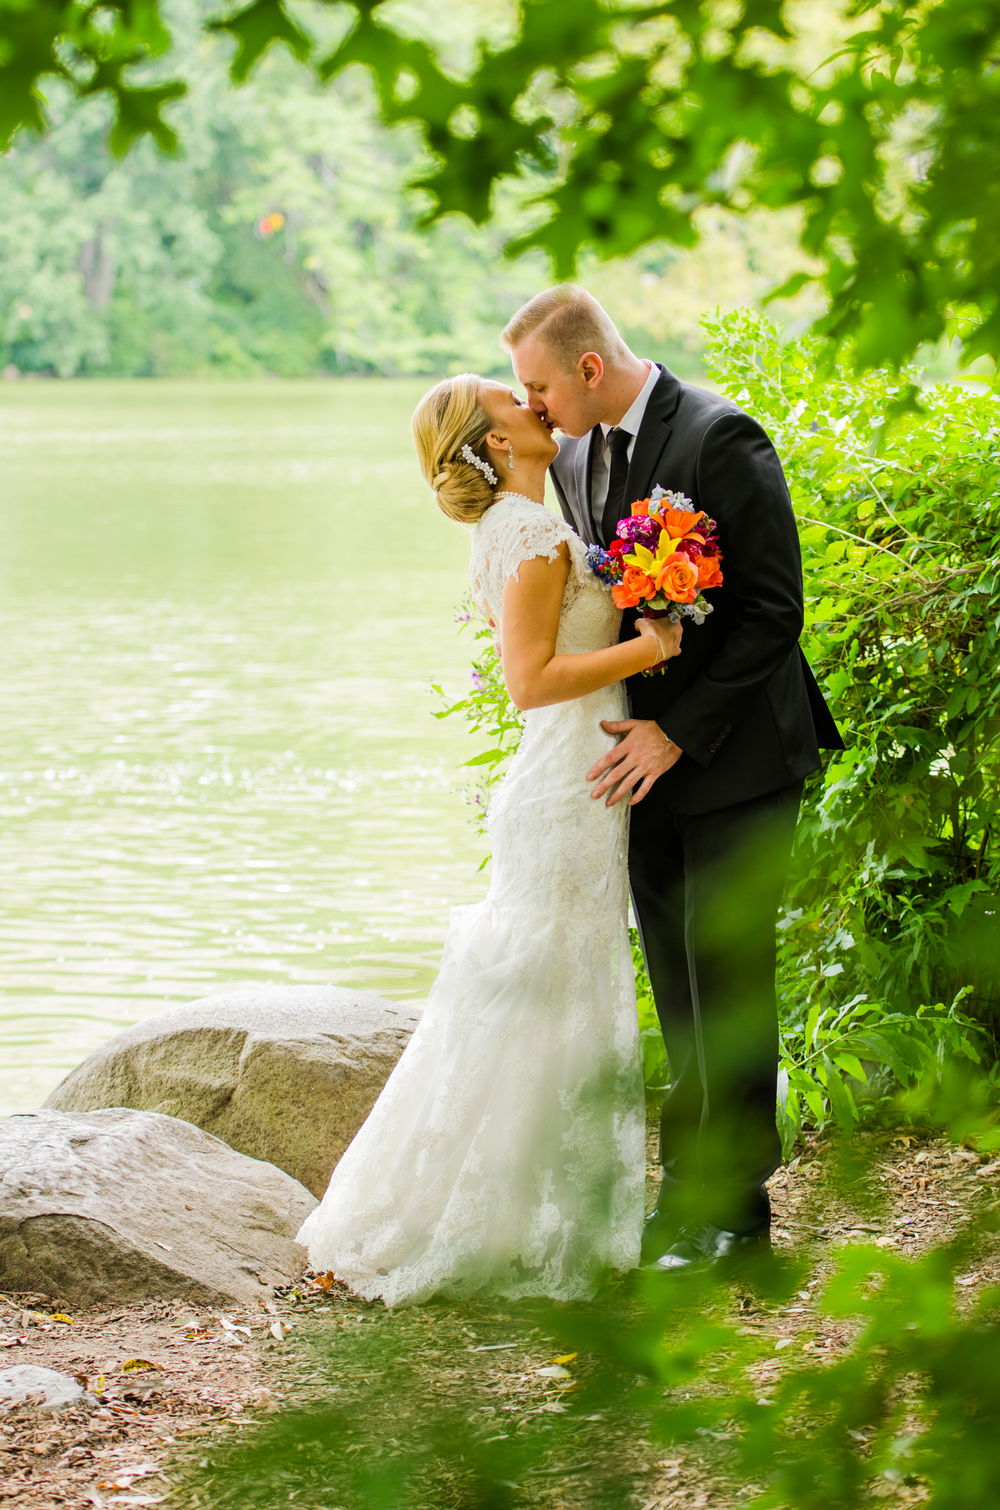 the-lake-central-park-wedding-photos-chris-nachtwey.jpg